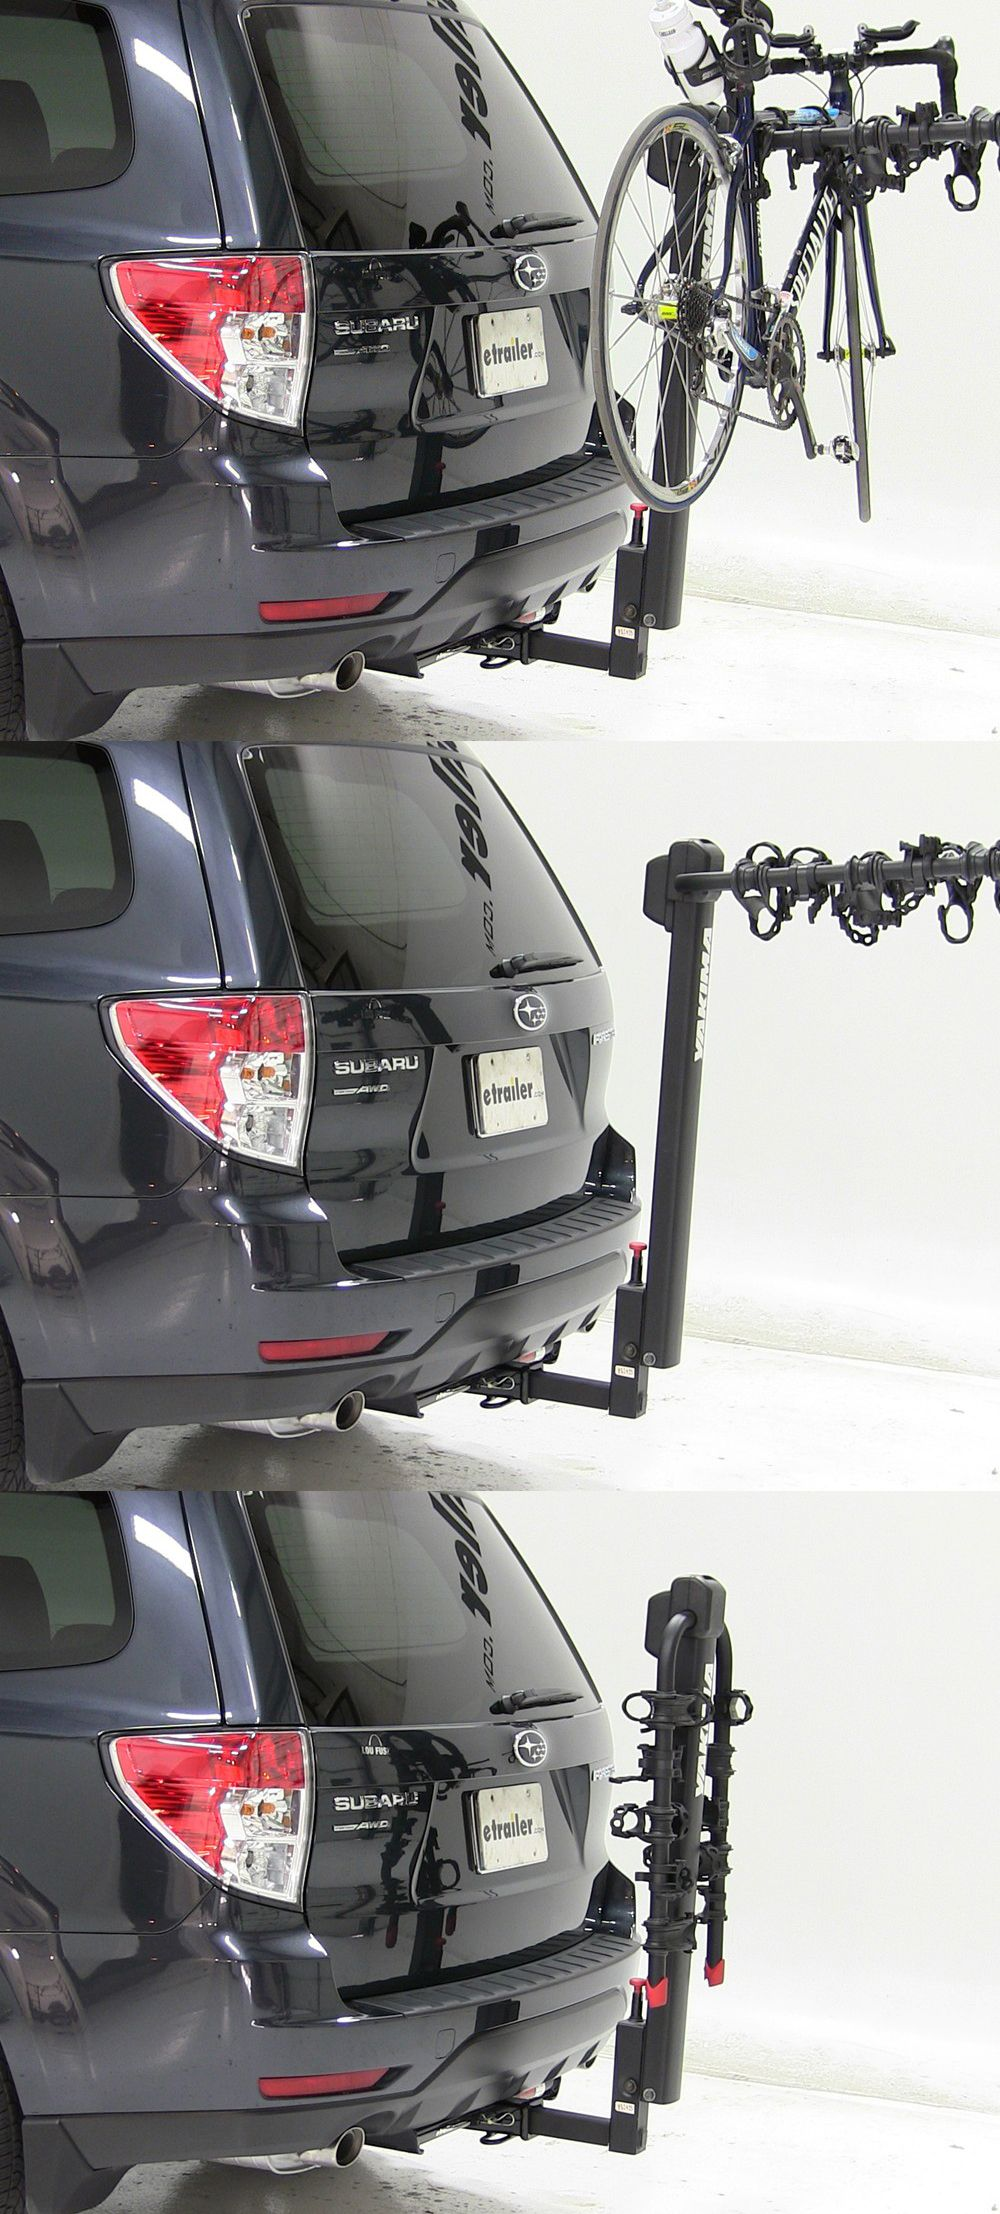 Subaru forester bike rack for 4 bikes transport your bikes to and from the cycling